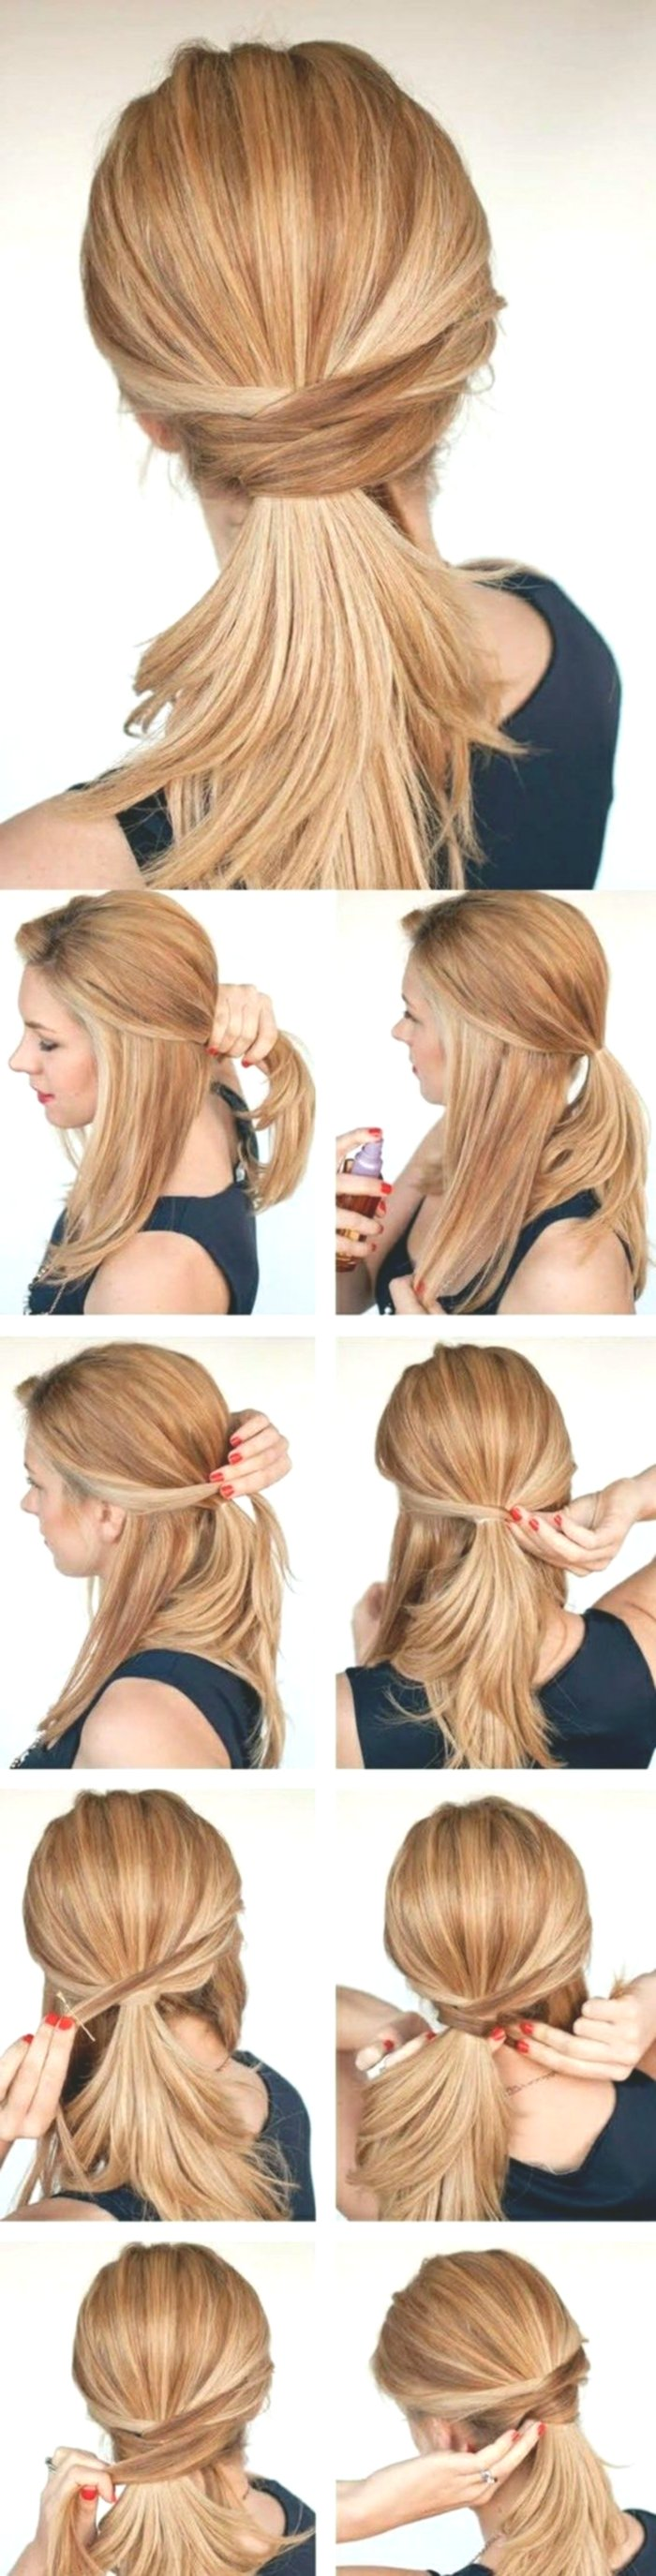 Excellent Hairstyles Make Long Hair Yourself-Plan Wonderful Hairstyles Long Hair Do It Yourself Models